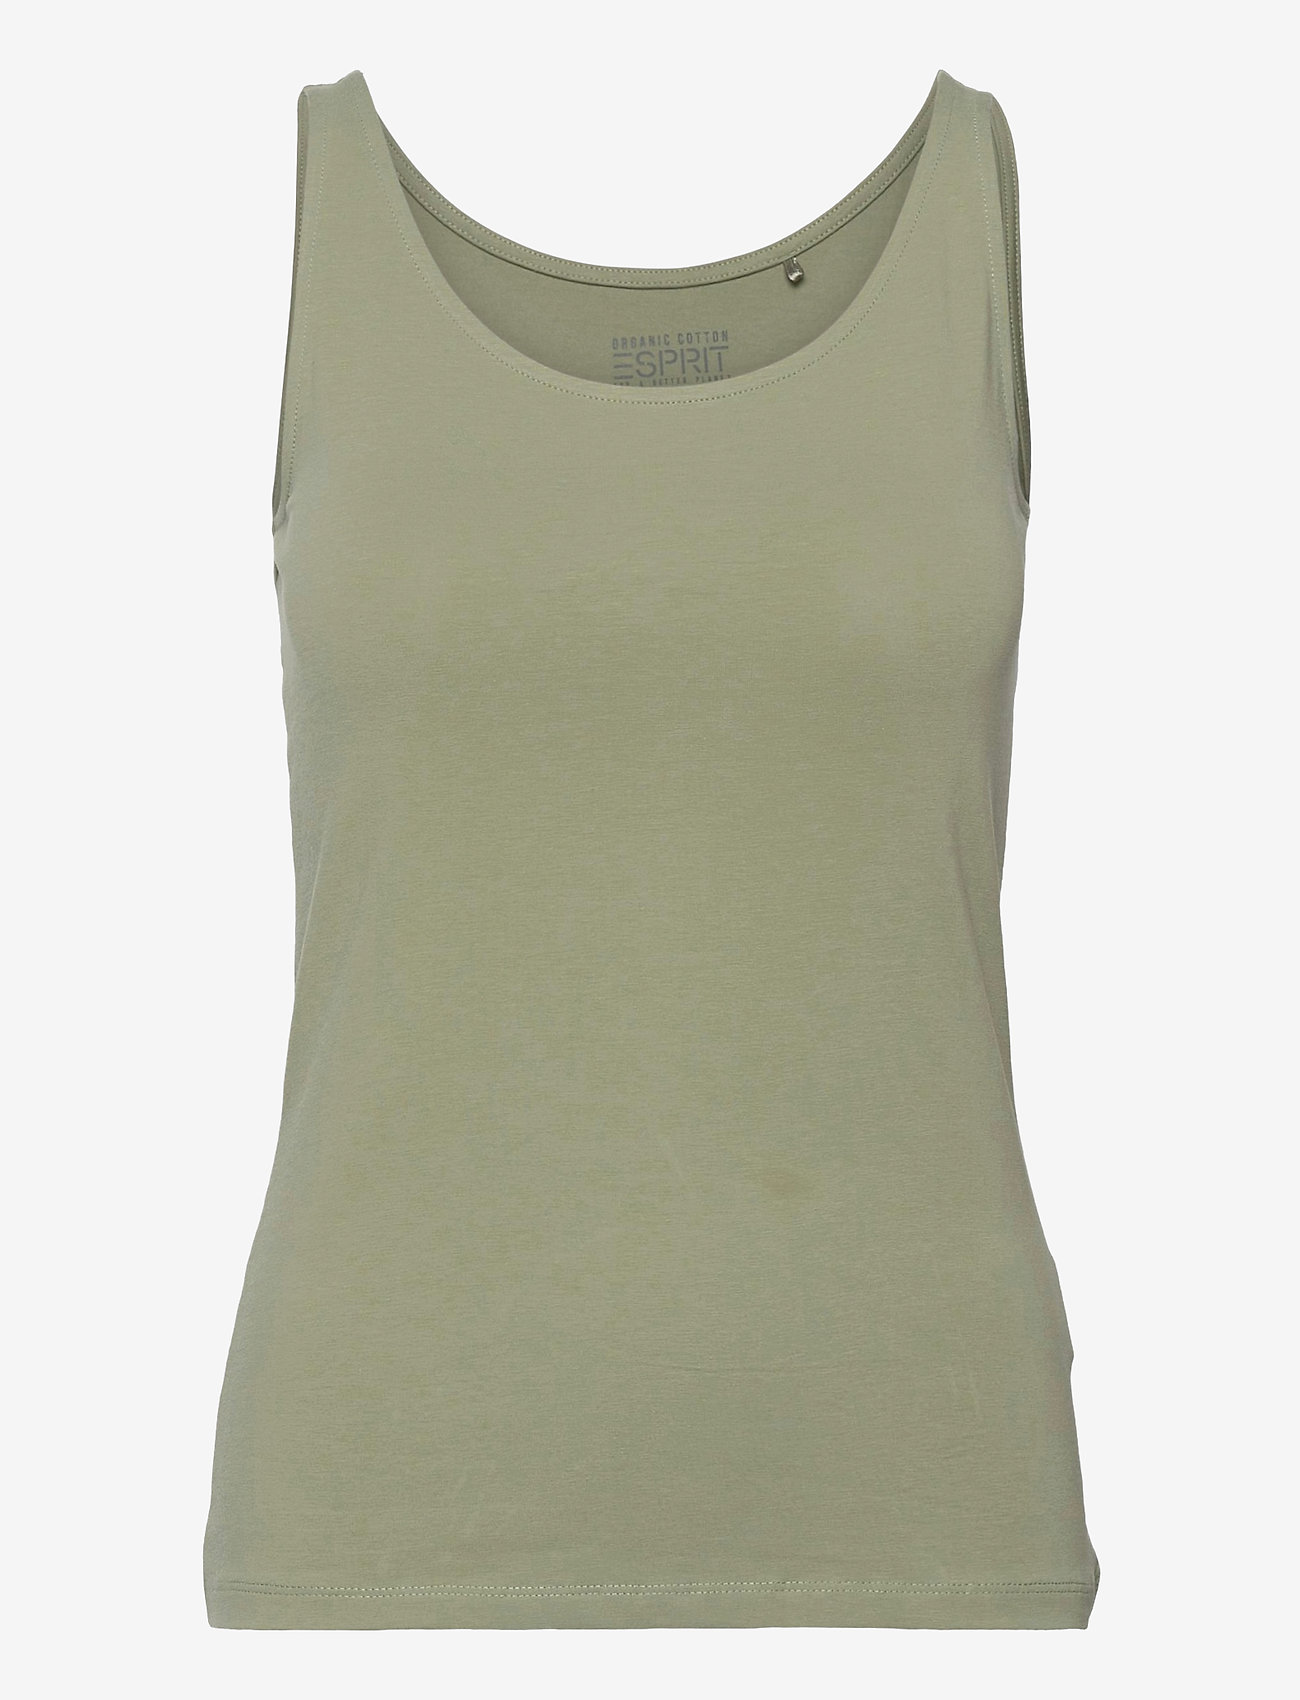 Esprit Casual - T-Shirts - t-shirt & tops - light khaki - 0